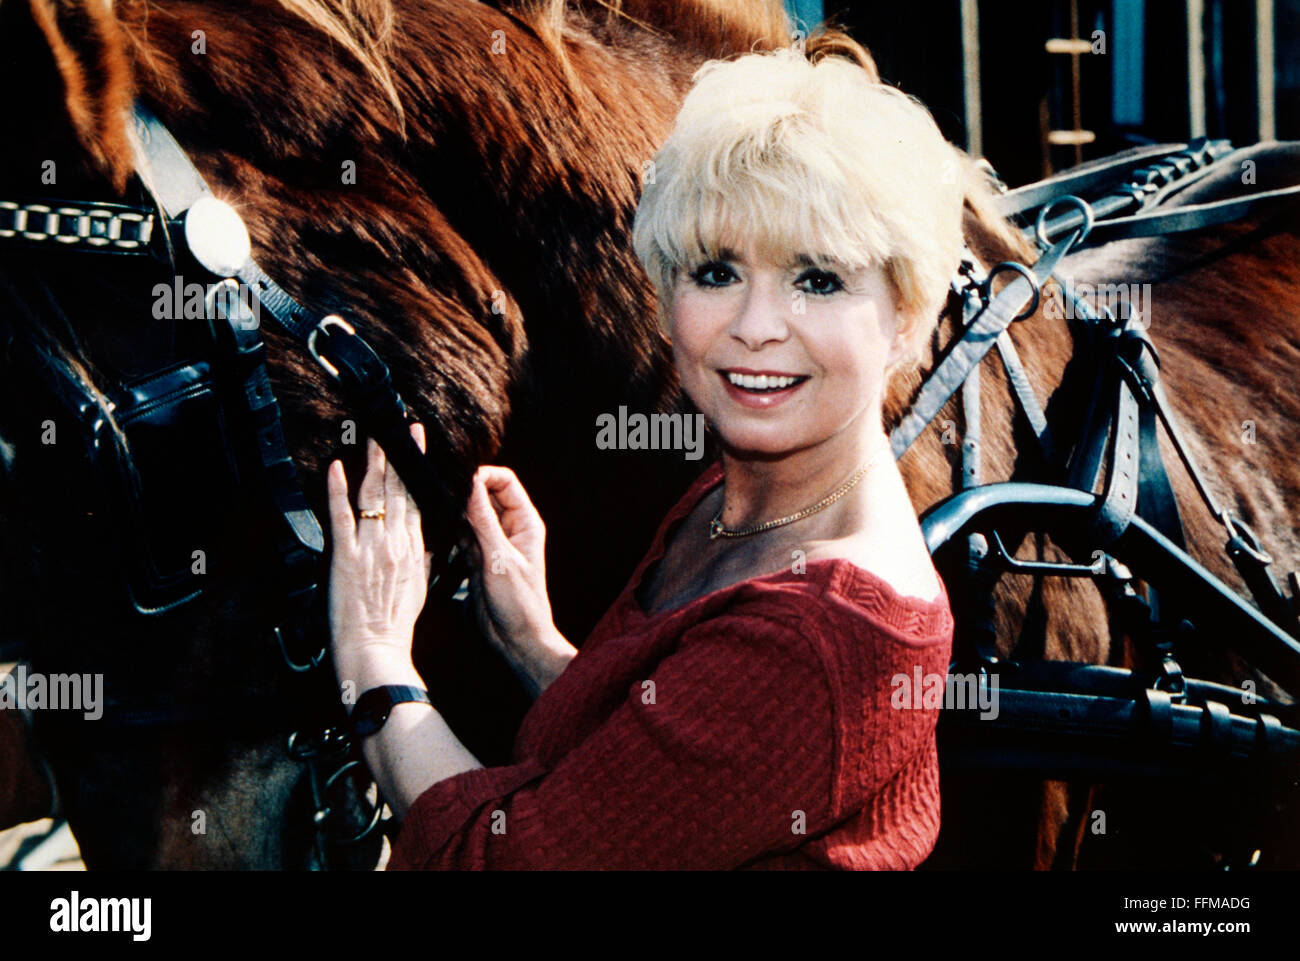 Steeger, Ingrid, * 1.4.1948, German actress, half length, with horse, at the Karl May Festival in Bad Segeberg, - Stock Image